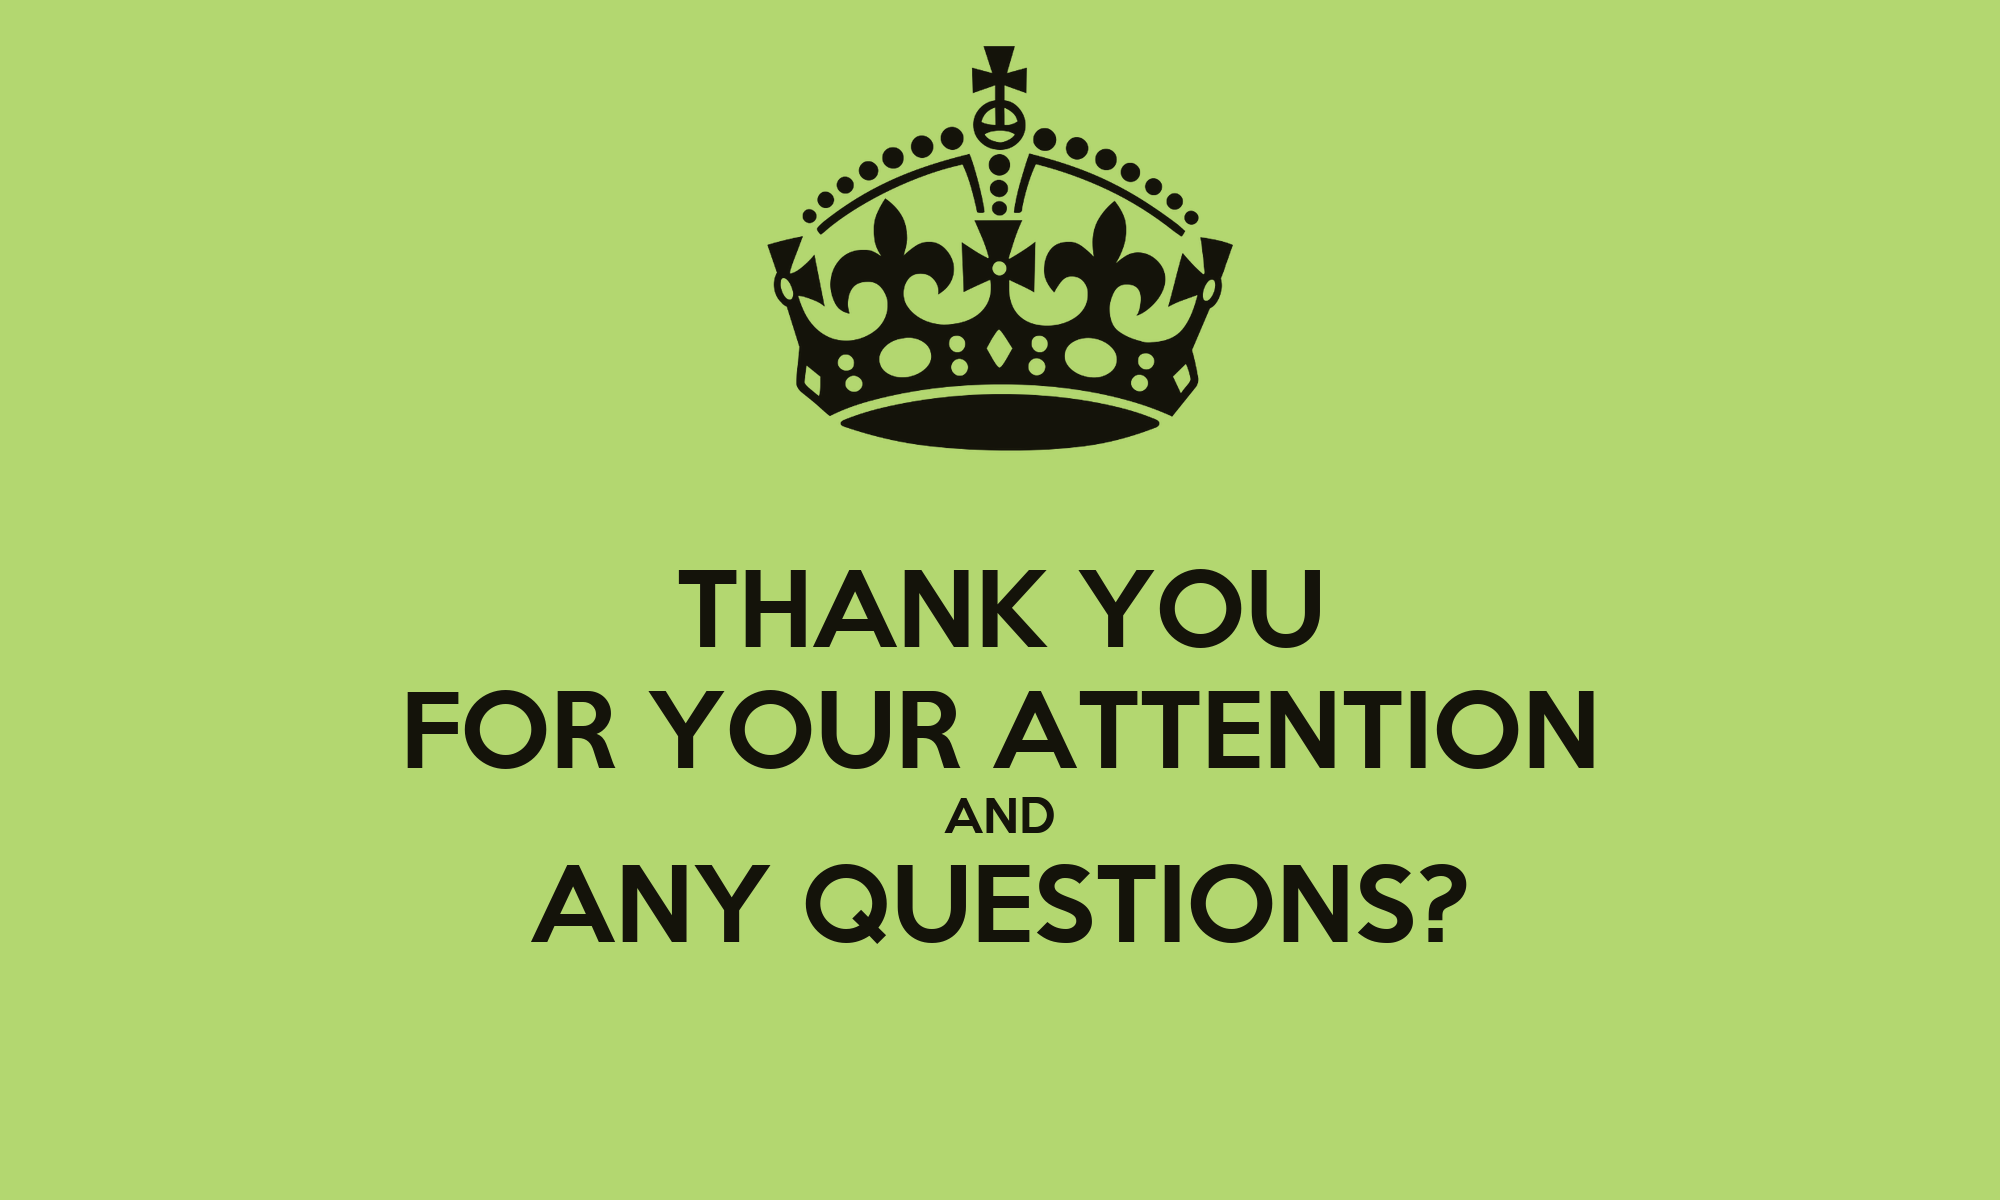 THANK YOU FOR YOUR ATTENTION AND ANY QUESTIONS Thank You For Your Attention Animation